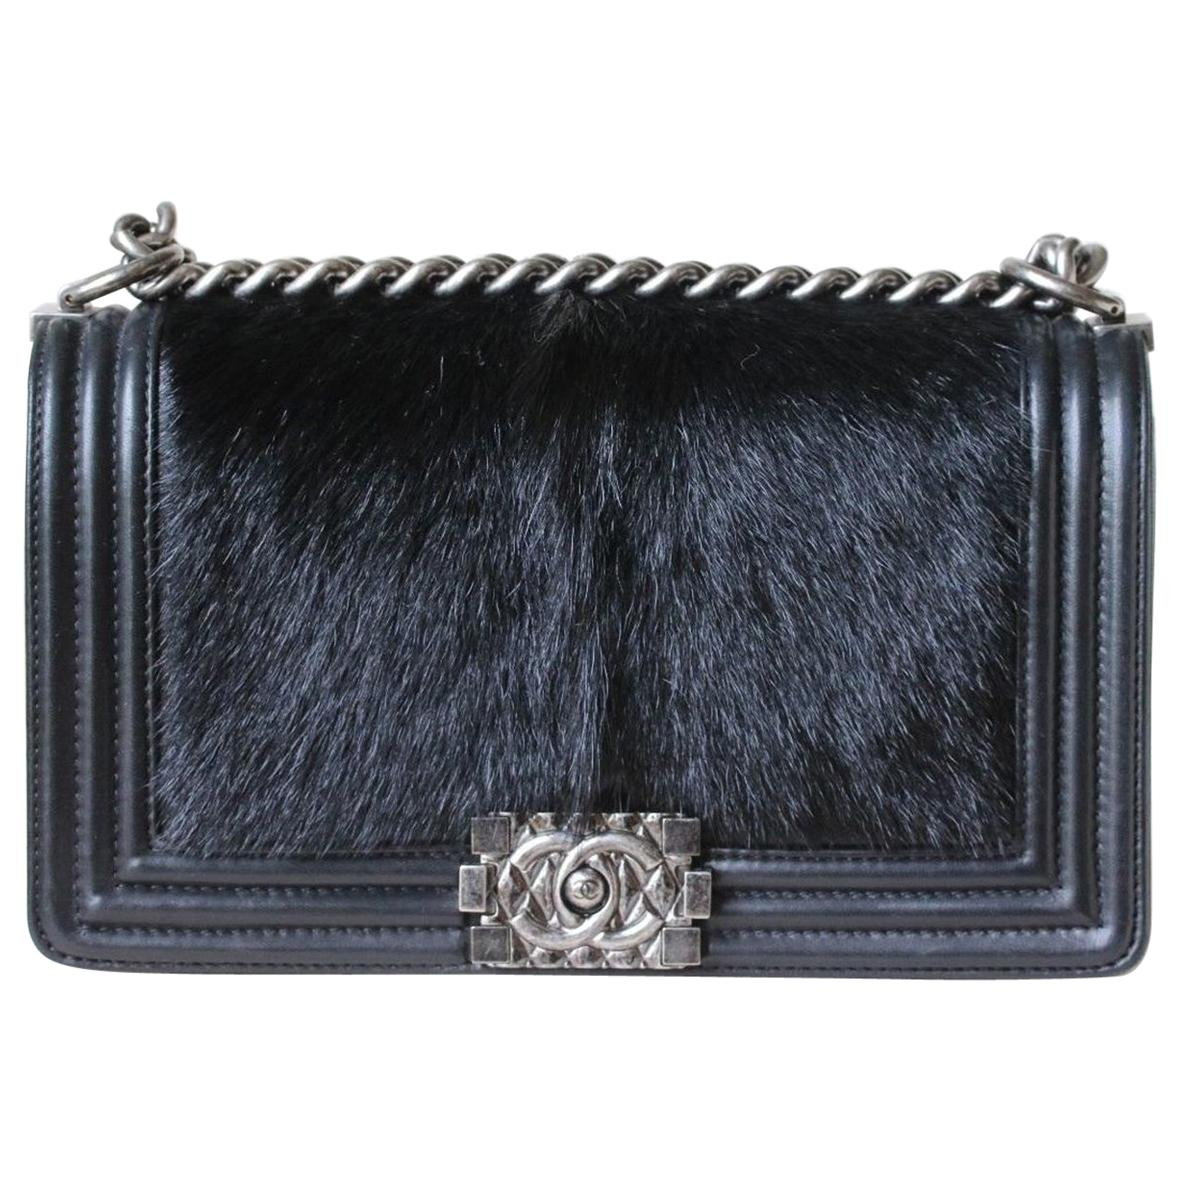 9e1c3035e0ff78 Chanel 2.55 Reissue Metallic Calfskin Quilted Flap Bag For Sale at 1stdibs